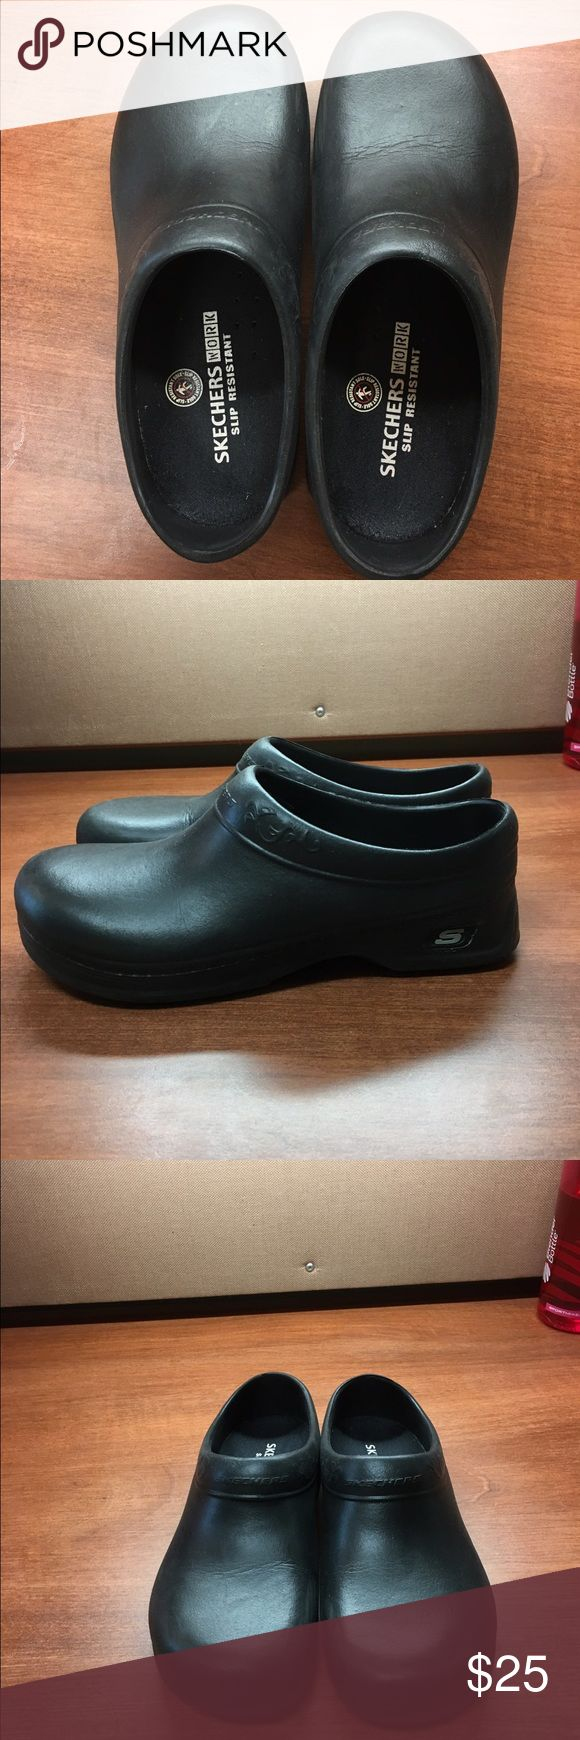 Sketchers black clogs, nursing/hospital shoes Worn once, comfortable soles, size 7, rubber non-slip with closed heel. Great for hospital jobs and comfortable. Skechers Shoes Mules & Clogs